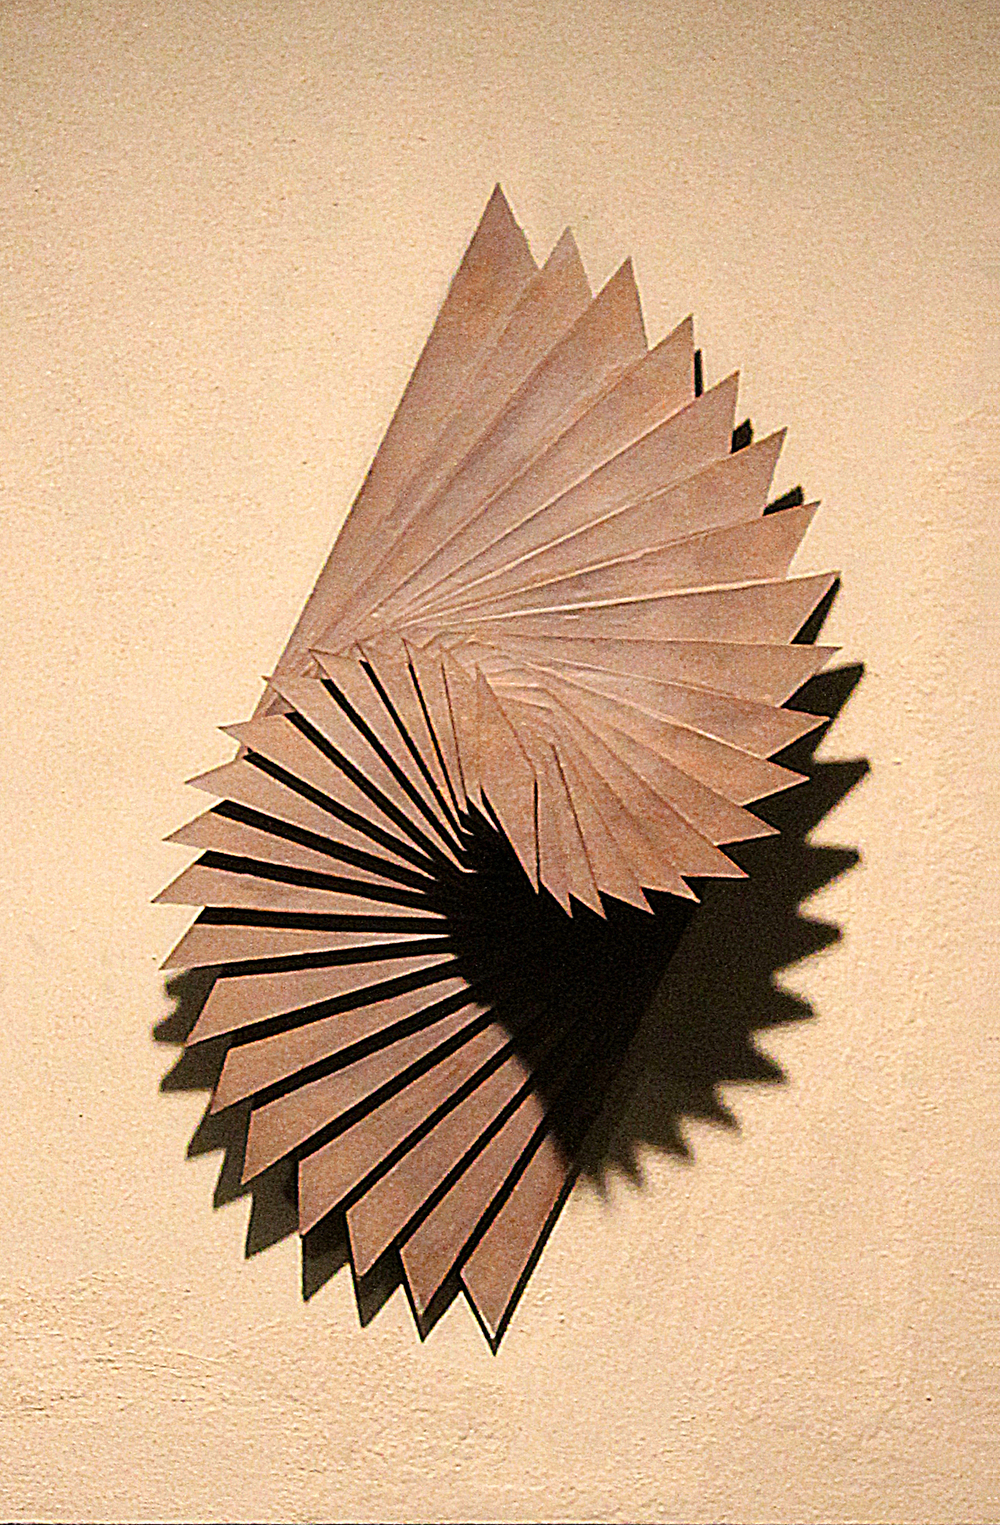 Harmonic Geometry IV  |  20 x 8 x 9 inches  | Stoneware, Stained birch, Sand  |  2015